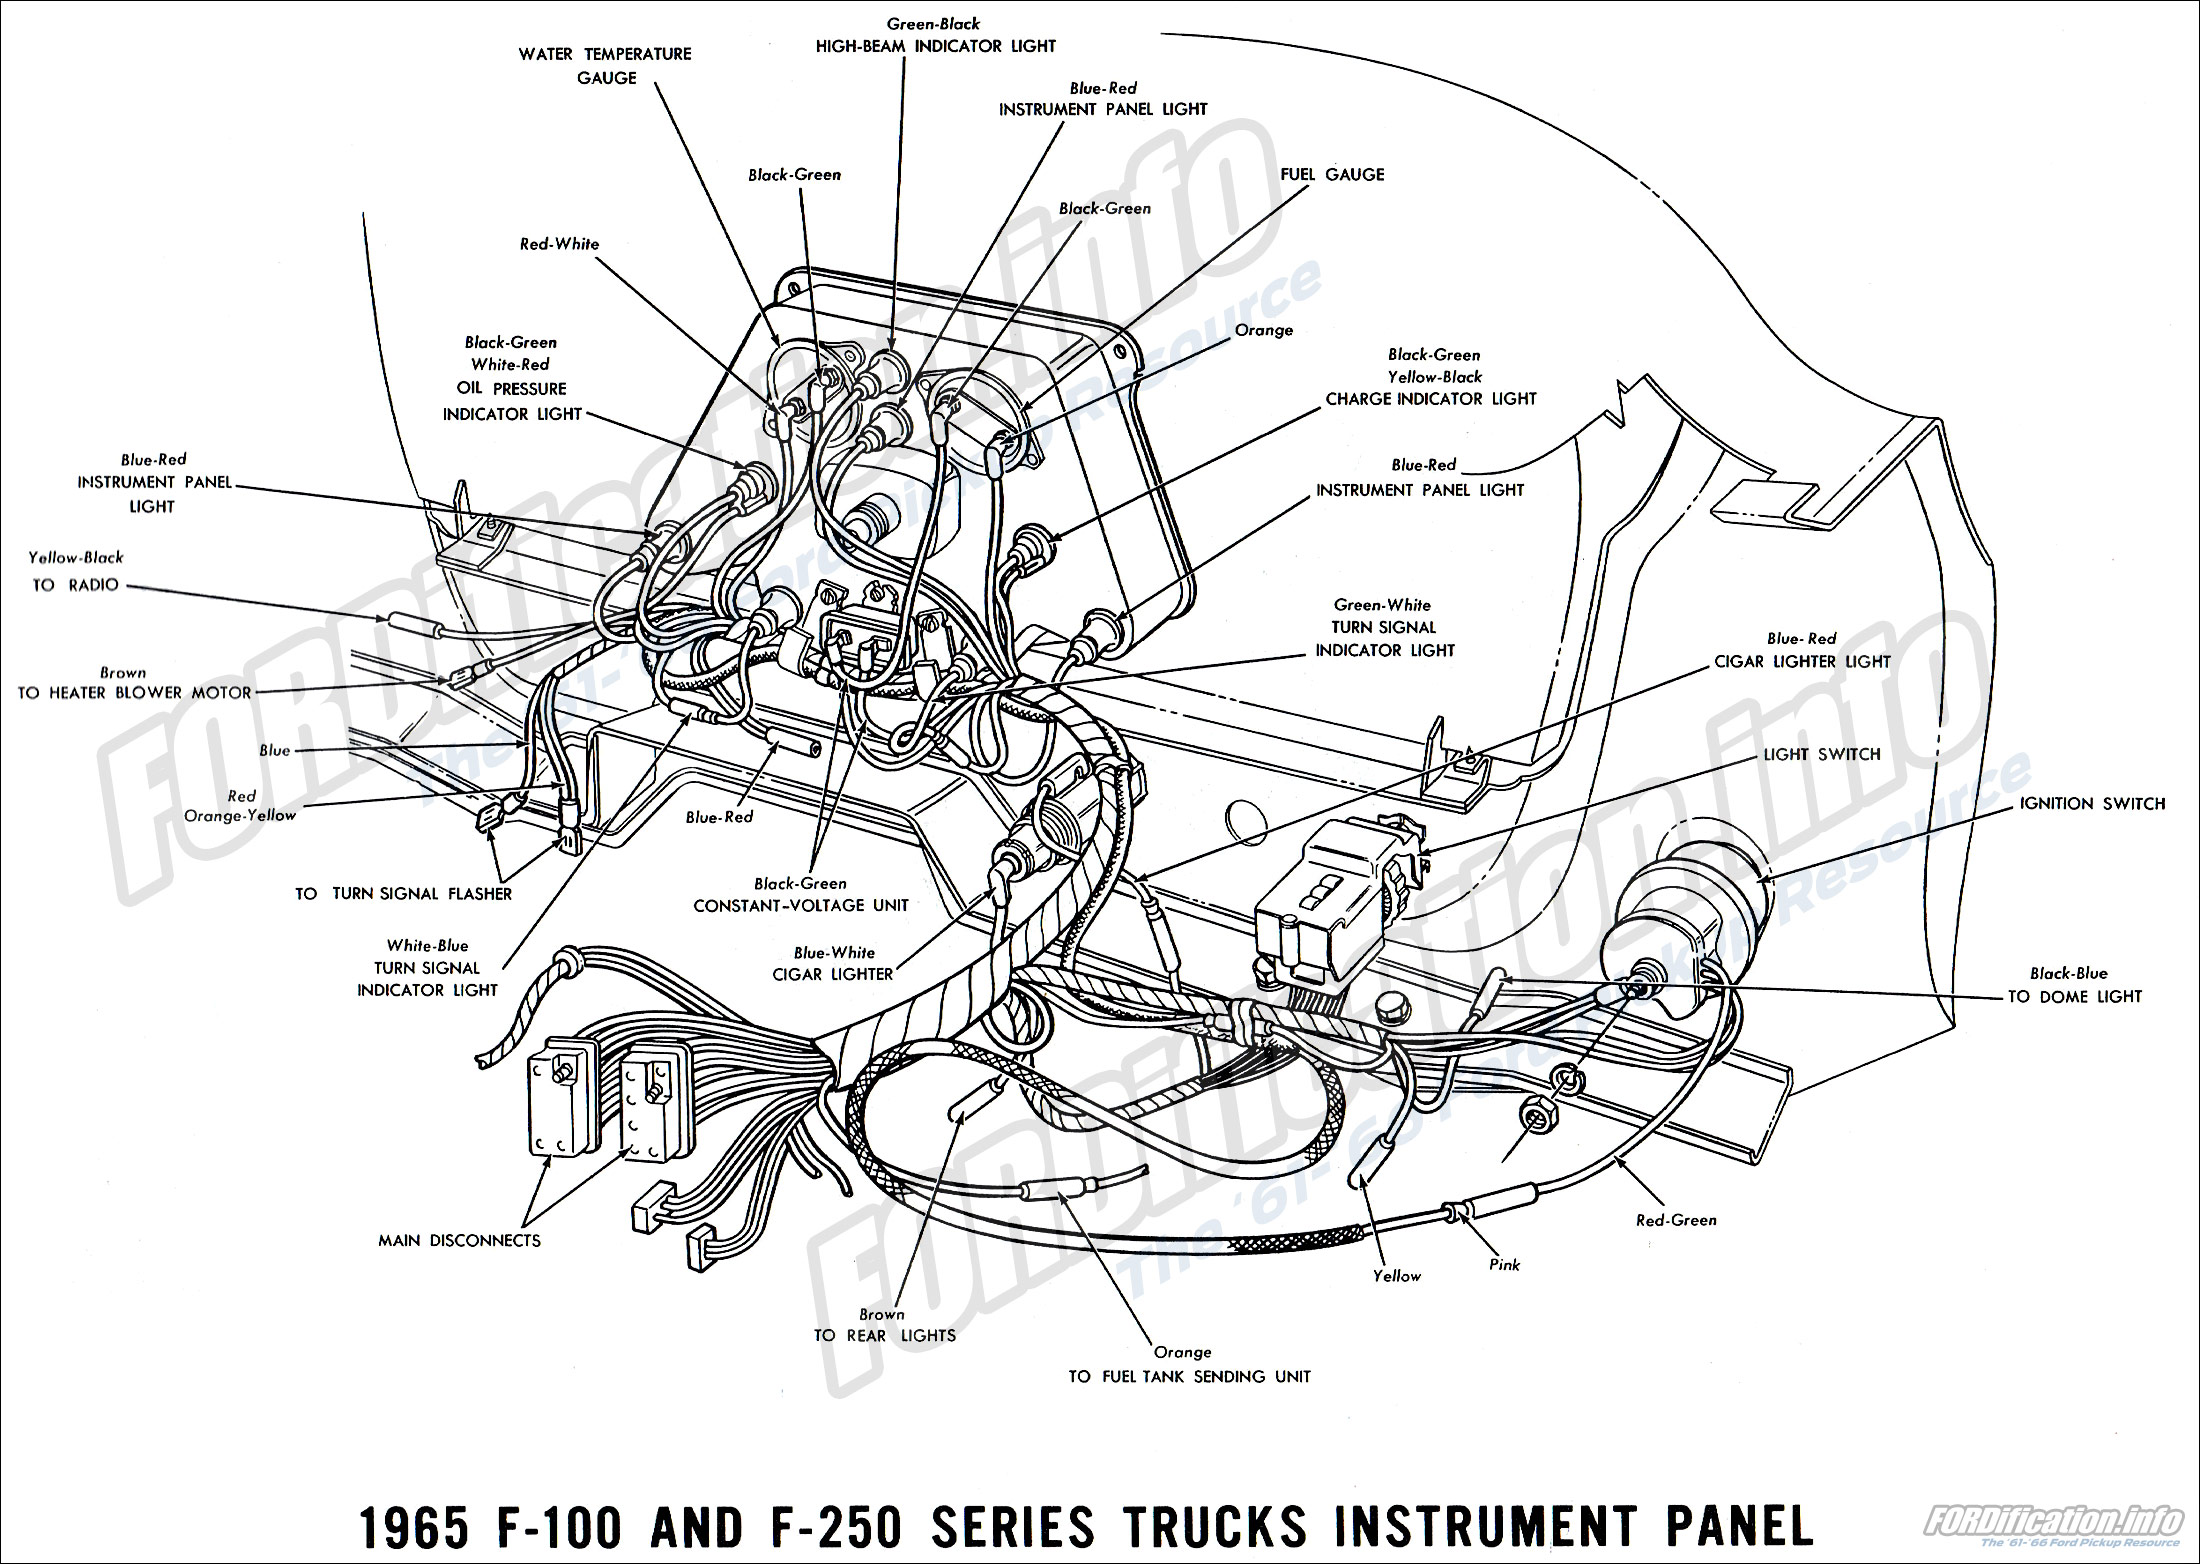 1965 ford truck wiring diagrams fordification info the 61 66 rh fordification info 1965 ford f100 electrical diagram 1965 ford f100 ignition switch wiring diagram